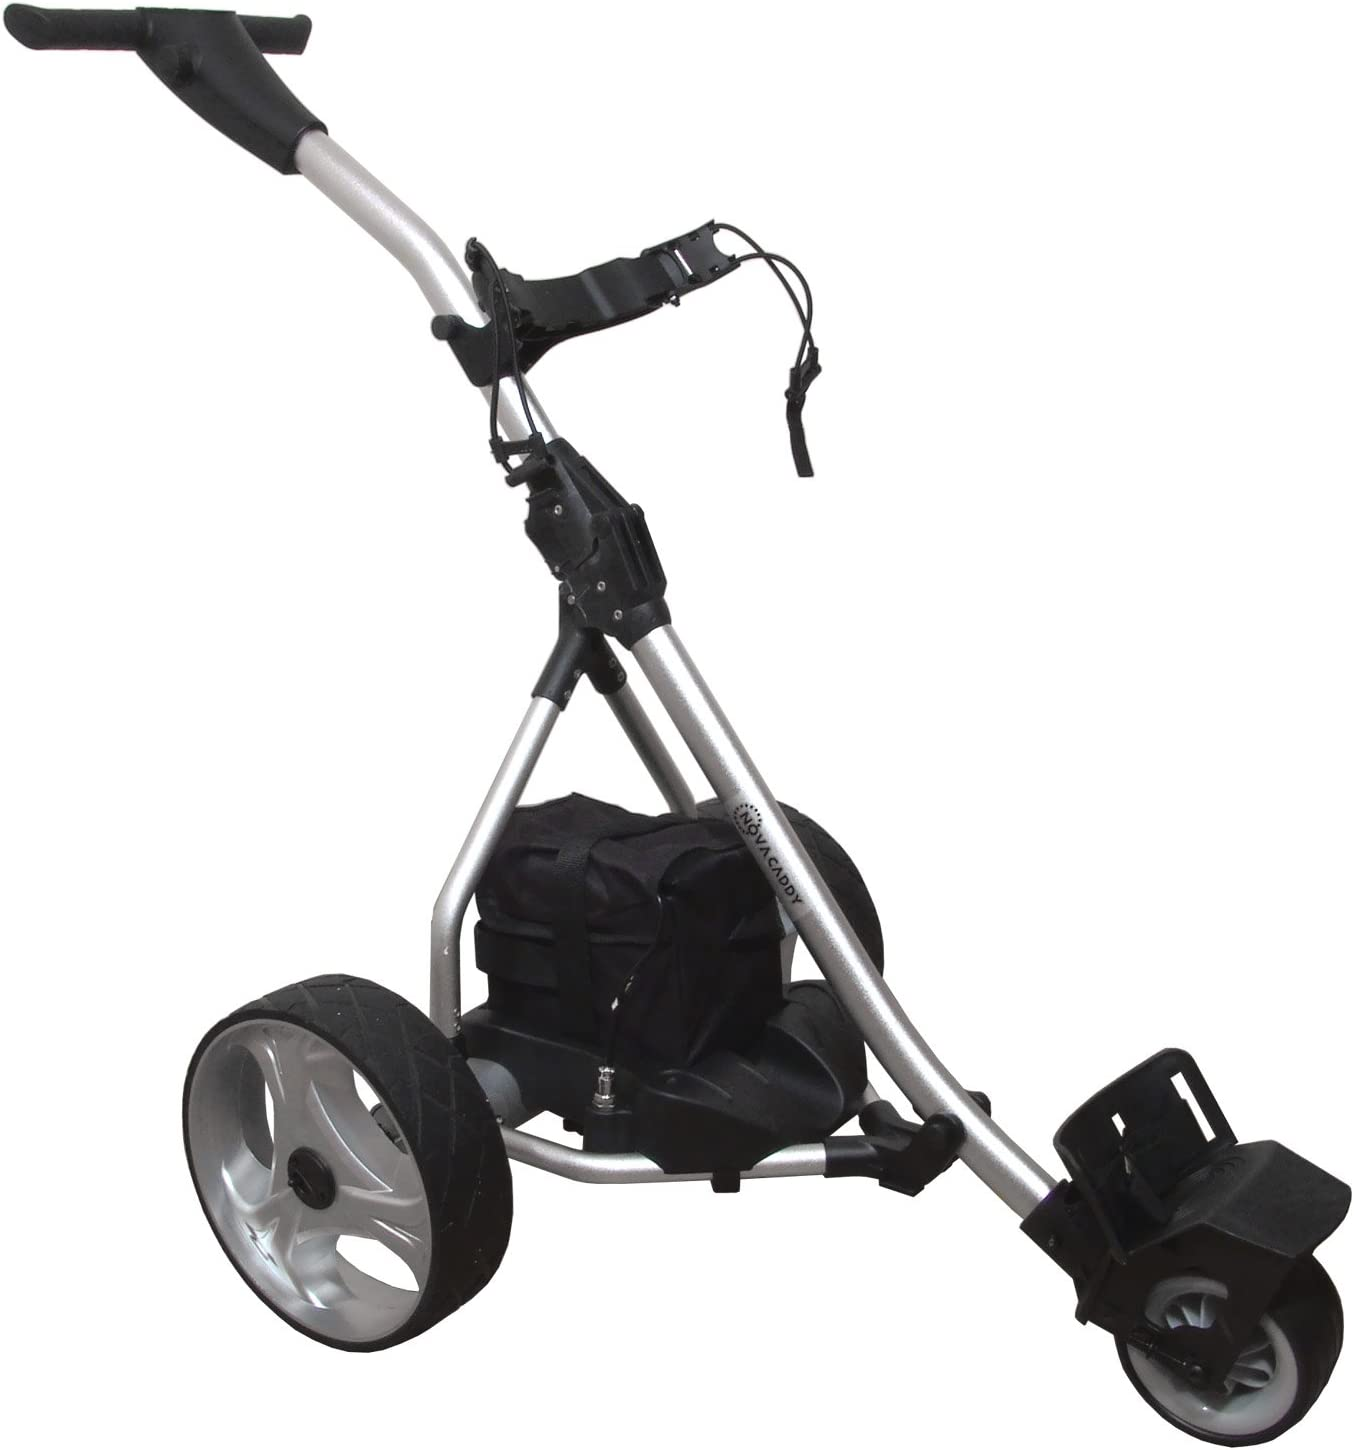 6 Best Electric Golf Push Carts Short time Review 1